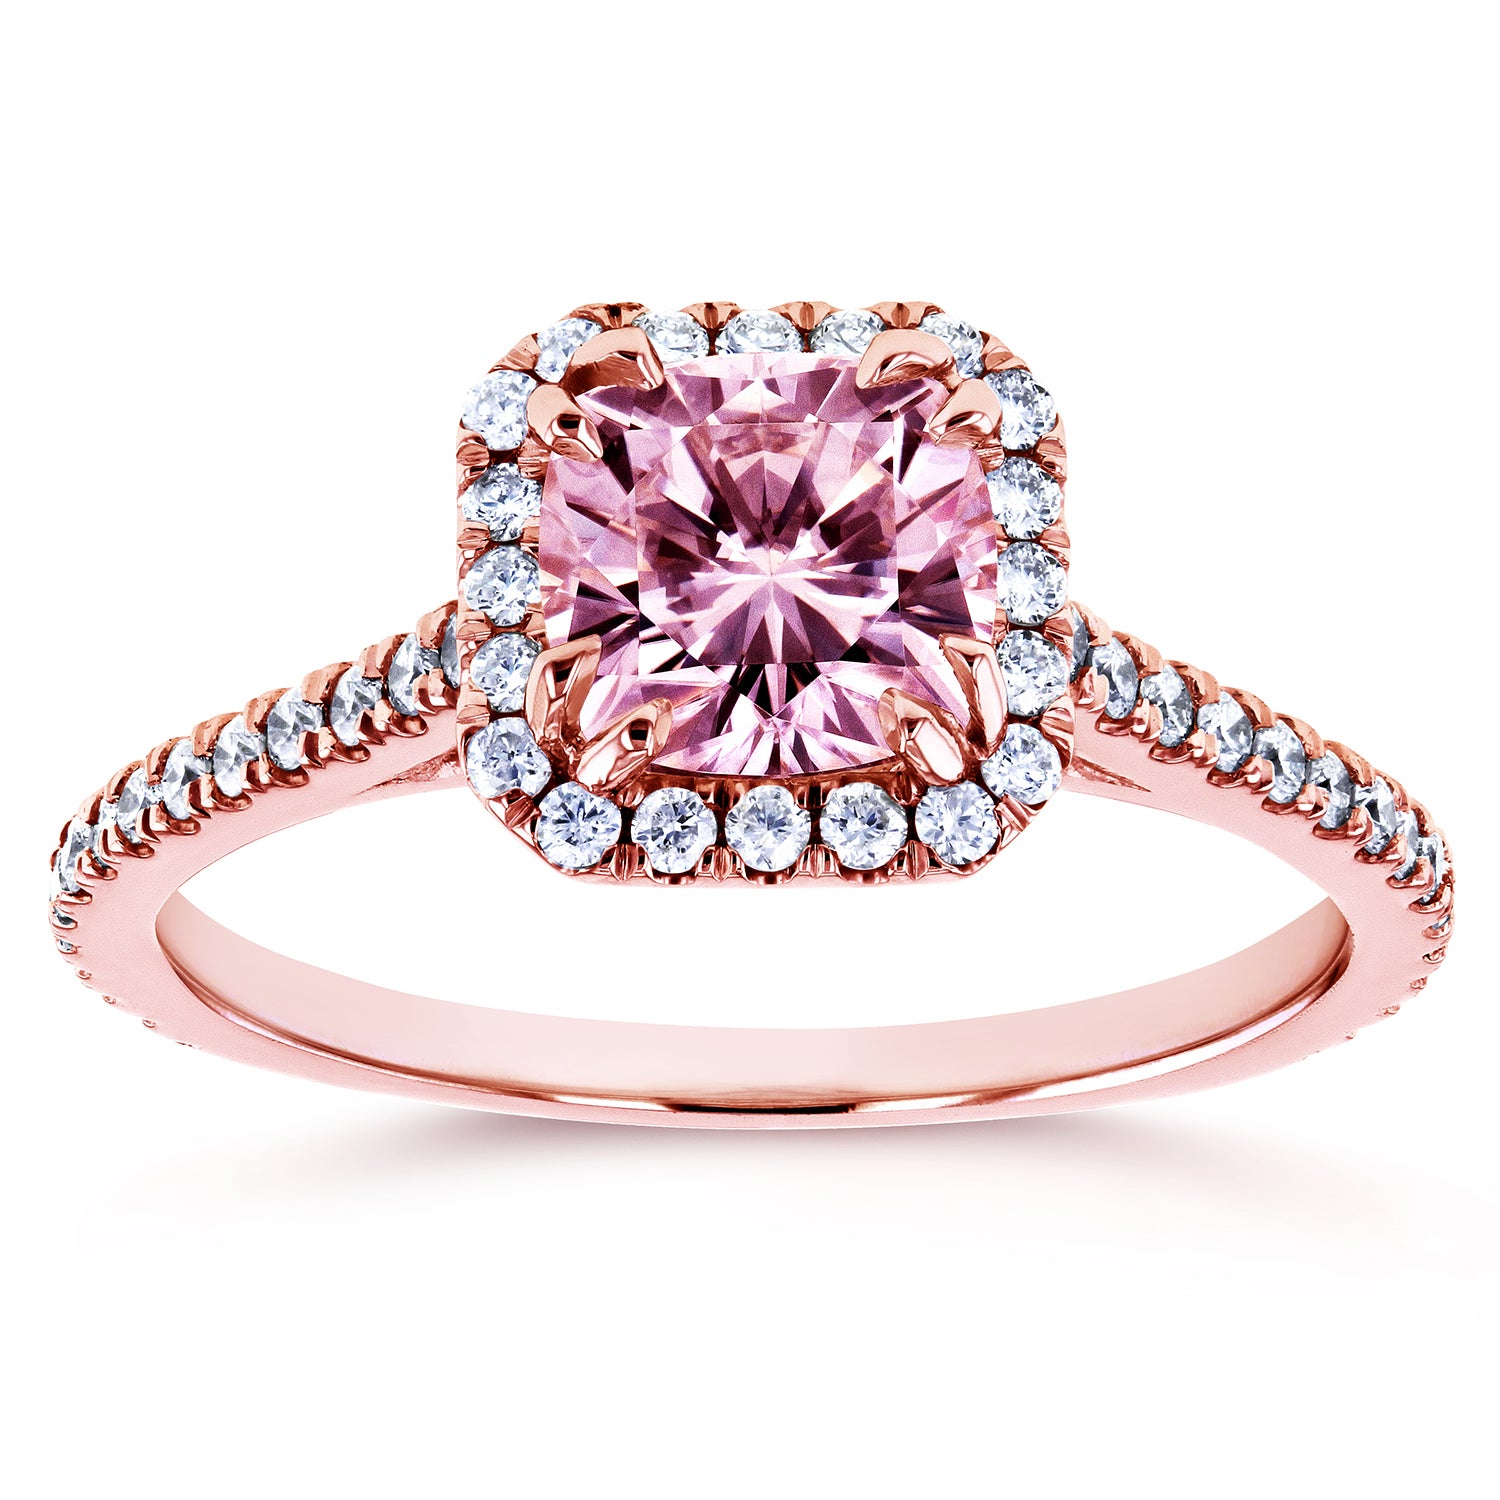 Shop Annello by Kobelli 14k Rose Gold 1 2/5ct TGW Pink Moissanite ...